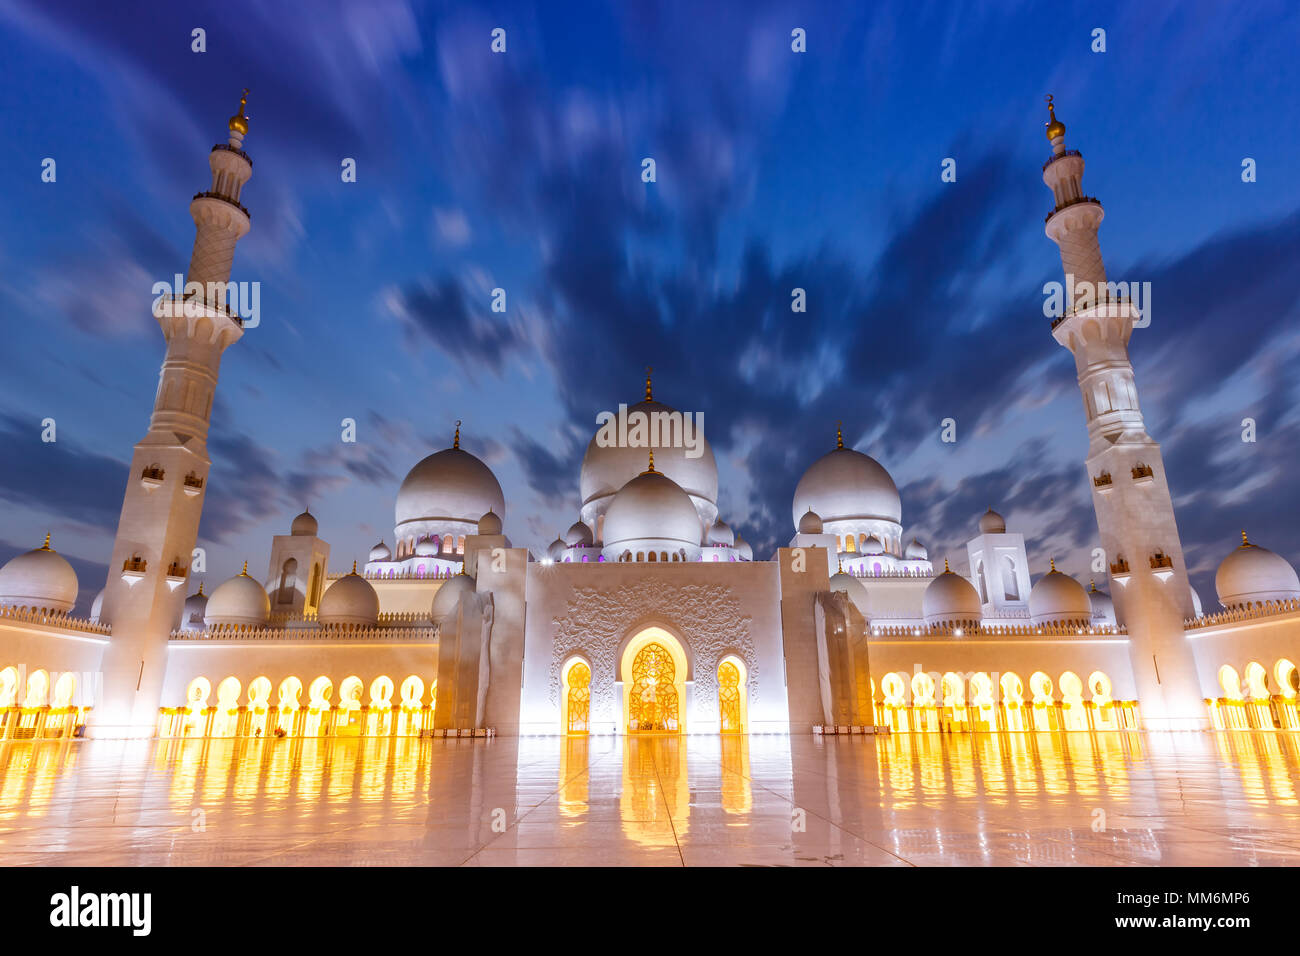 Abu Dhabi Sheikh Zayed Grand Mosque twilight minarets United Arab Emirates UAE - Stock Image